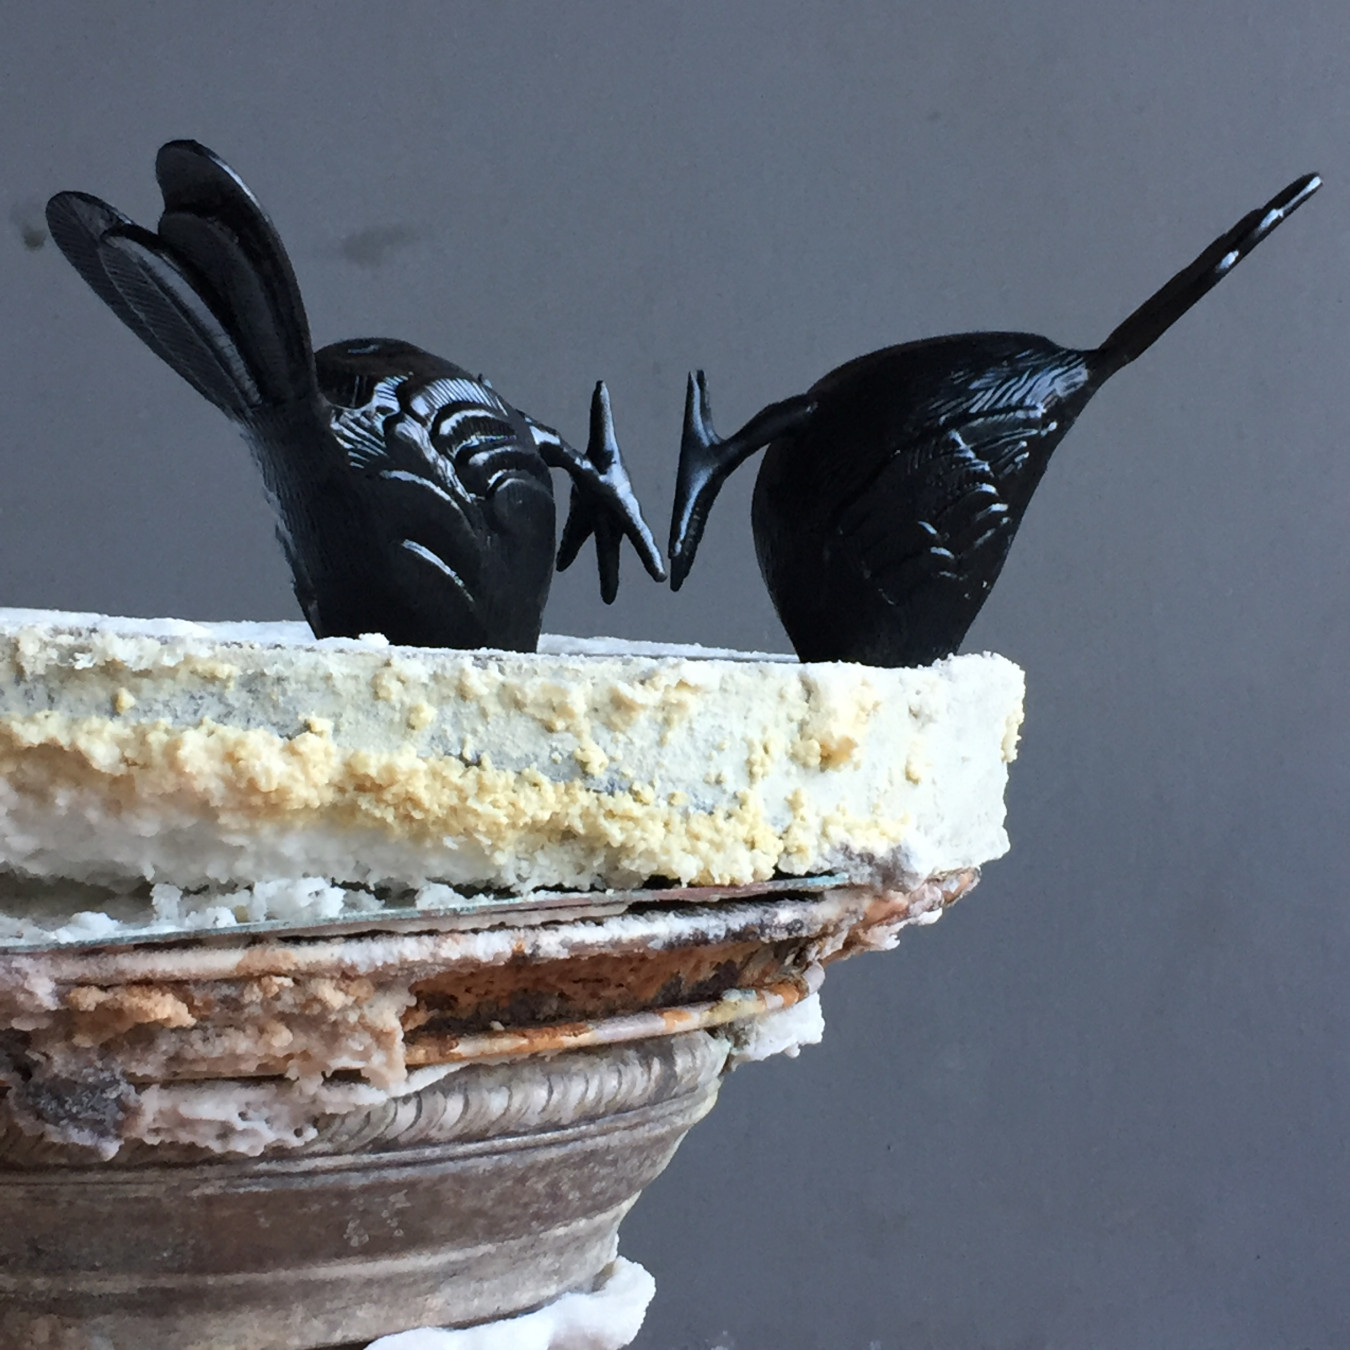 Detail image of two blackbirds facing head-first into a salt crust.